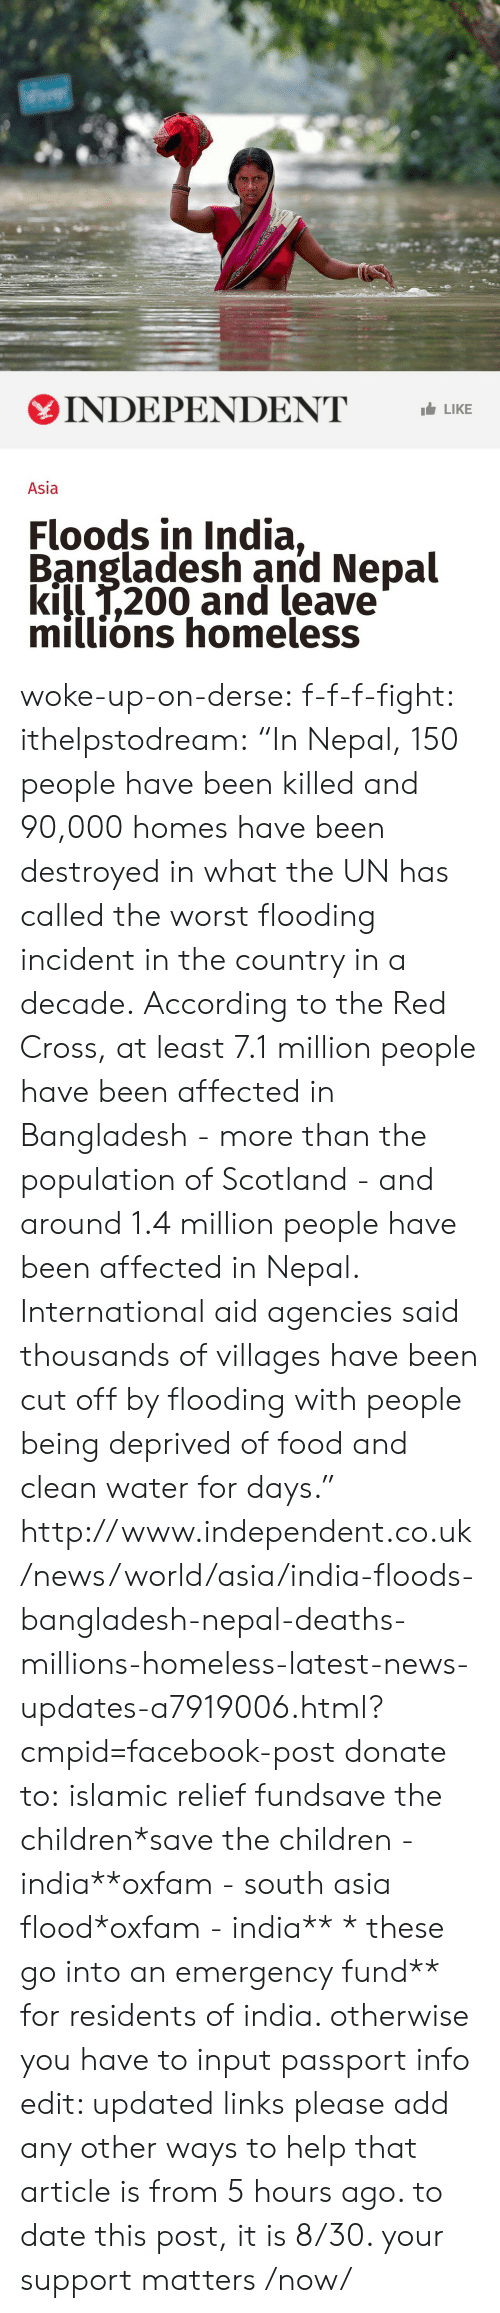 """Bailey Jay, Children, and Facebook: INDEPENDENT LIKE  Asia  Floods in India,  Bangladesh and Nepal  kill T,200 and leave  millions homeless woke-up-on-derse:  f-f-f-fight:  ithelpstodream:  """"In Nepal, 150 people have been killed and 90,000 homes have been destroyed in what the UN has called the worst flooding incident in the country in a decade.  According to the Red Cross, at least 7.1 million people have been affected in Bangladesh - more than the population of Scotland - and around 1.4 million people have been affected in Nepal.  International aid agencies said thousands of villages have been cut off by flooding with people being deprived of food and clean water for days.""""  http://www.independent.co.uk/news/world/asia/india-floods-bangladesh-nepal-deaths-millions-homeless-latest-news-updates-a7919006.html?cmpid=facebook-post  donate to:islamic relief fundsave the children*save the children - india**oxfam - south asia flood*oxfam - india** * these go into an emergency fund** for residents of india. otherwise you have to input passport info edit: updated links please add any other ways to help  that article is from 5 hours ago.  to date this post, it is 8/30. your support matters /now/"""